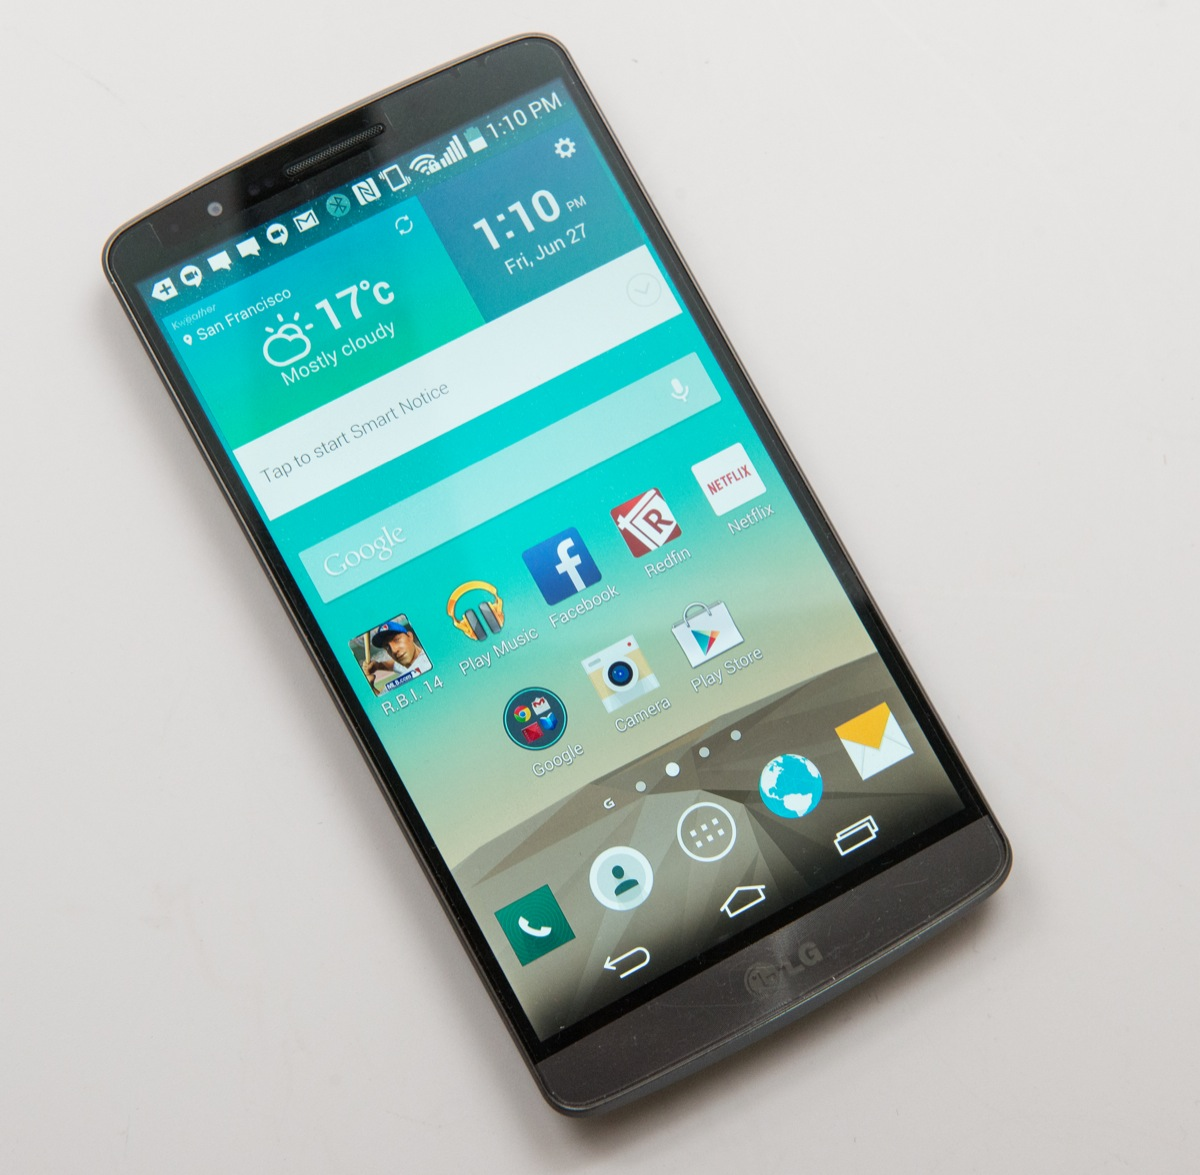 Lg g3 release date